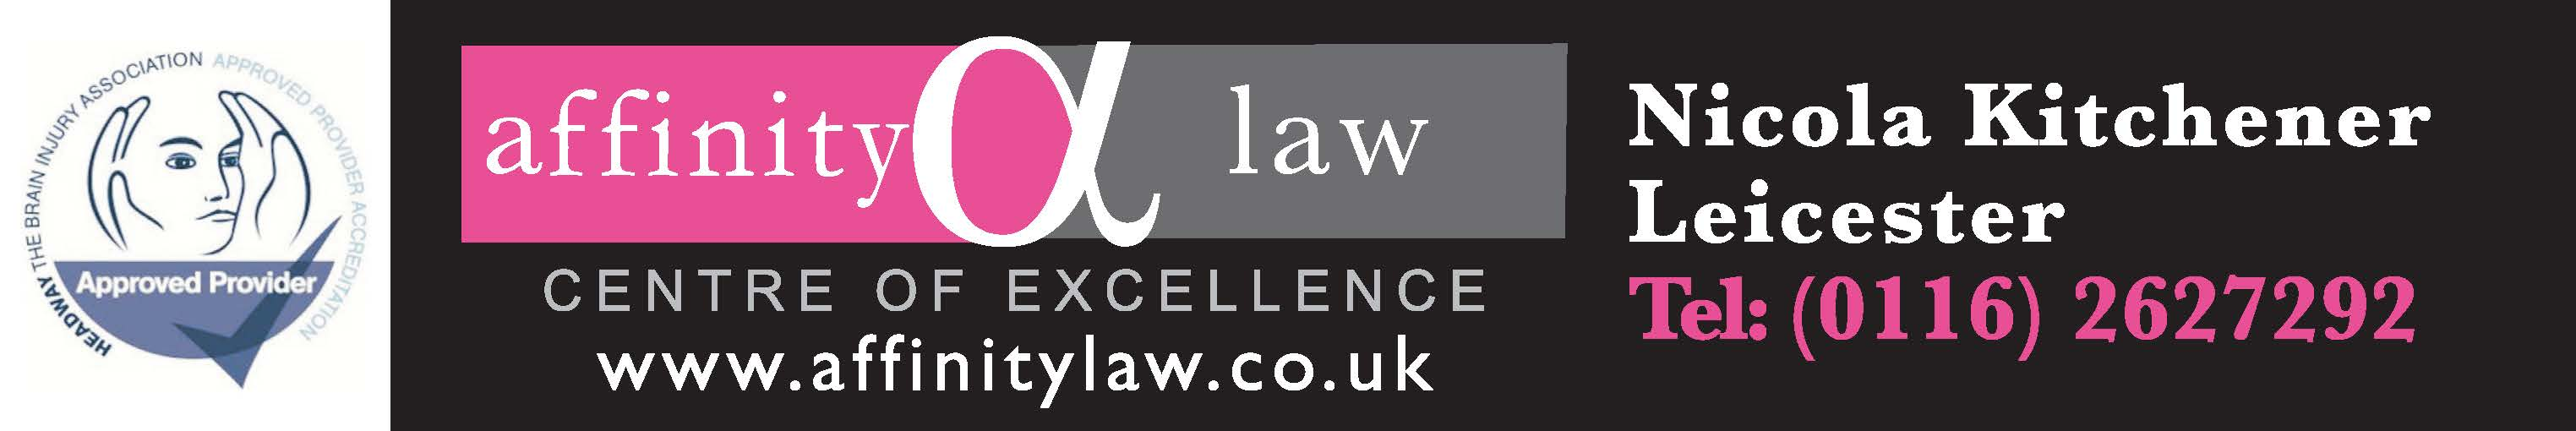 Affinity law banner